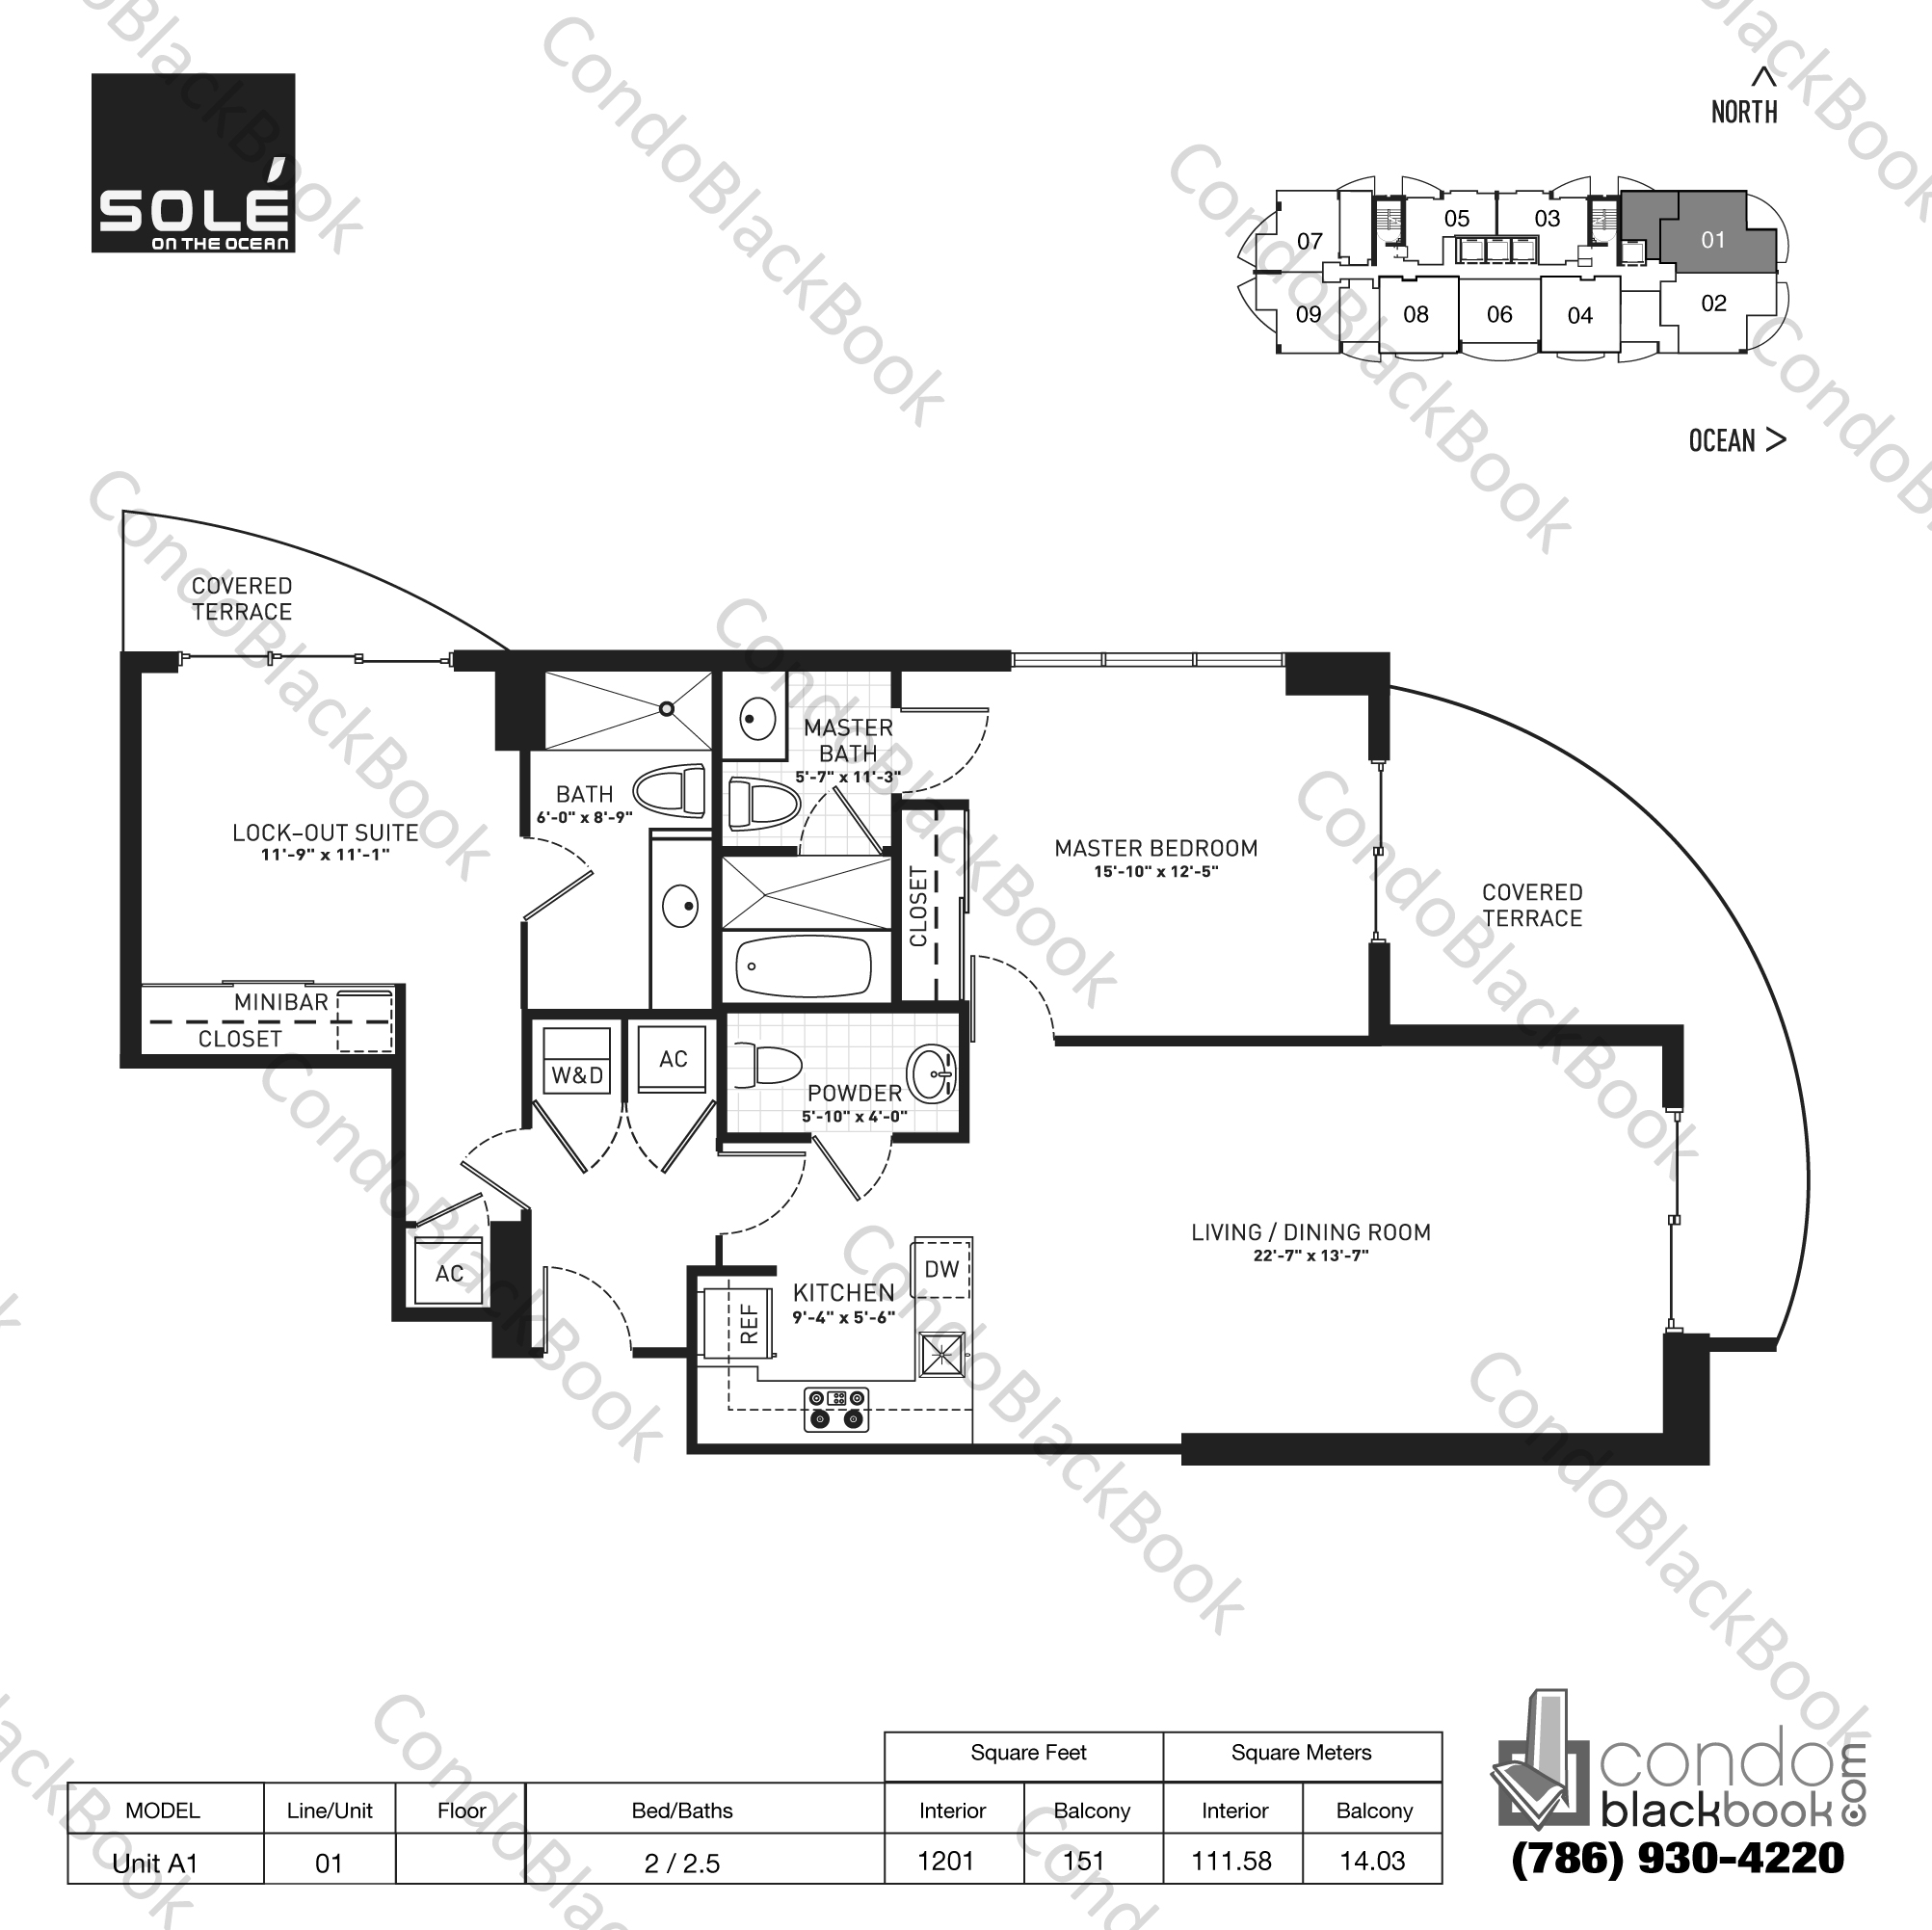 Floor plan for Sole Sunny Isles Beach, model Unit A1, line 01, 2 / 2.5 bedrooms, 1201 sq ft